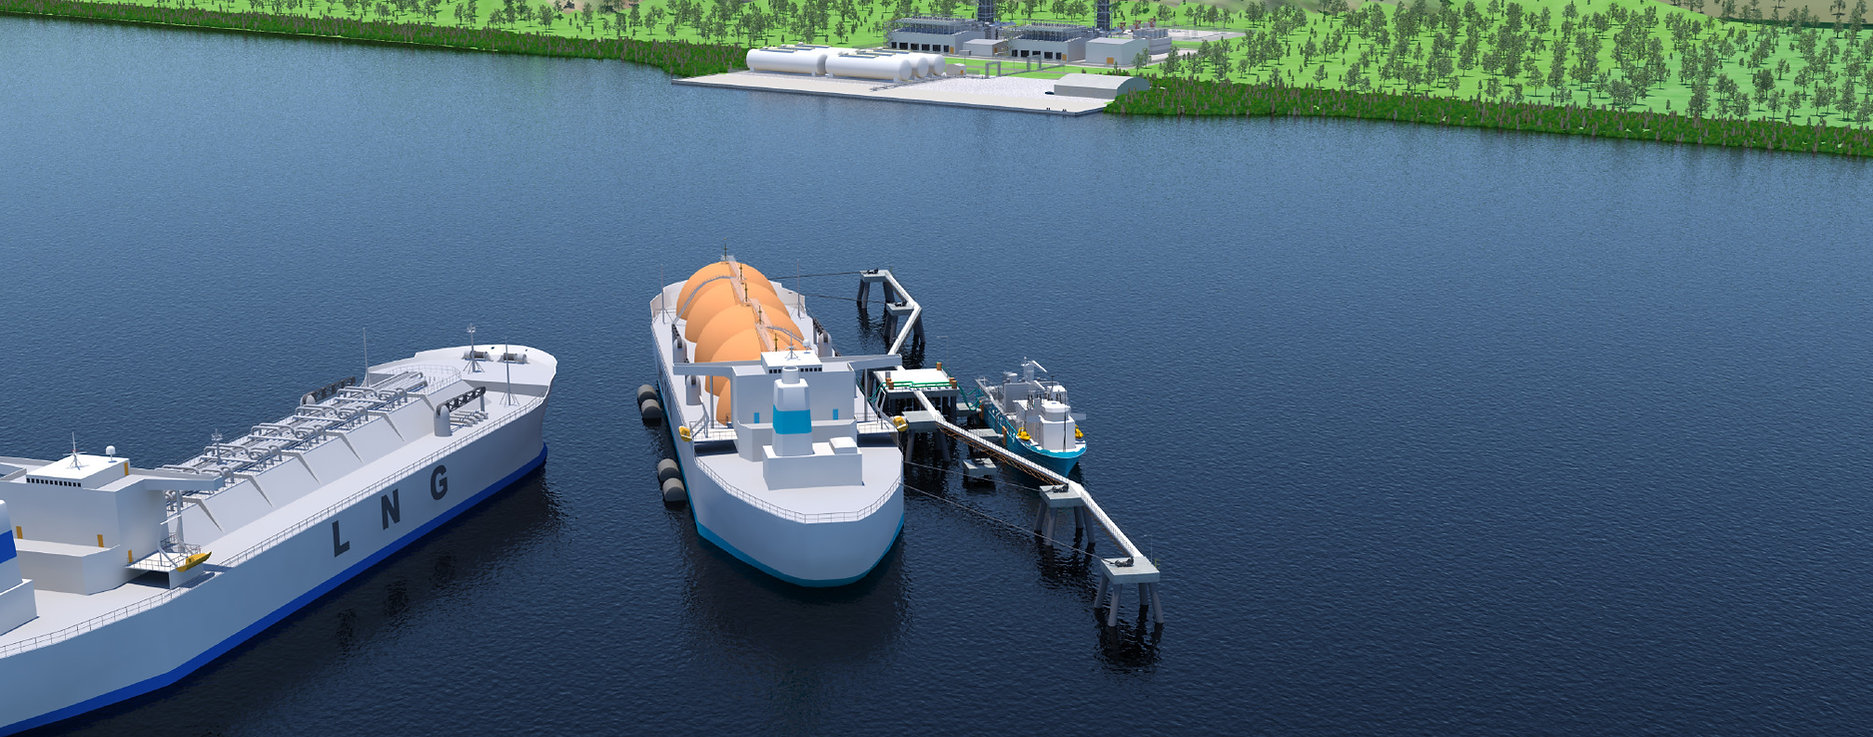 Dreifa Floating LNG Import Terminal - Gas to Power